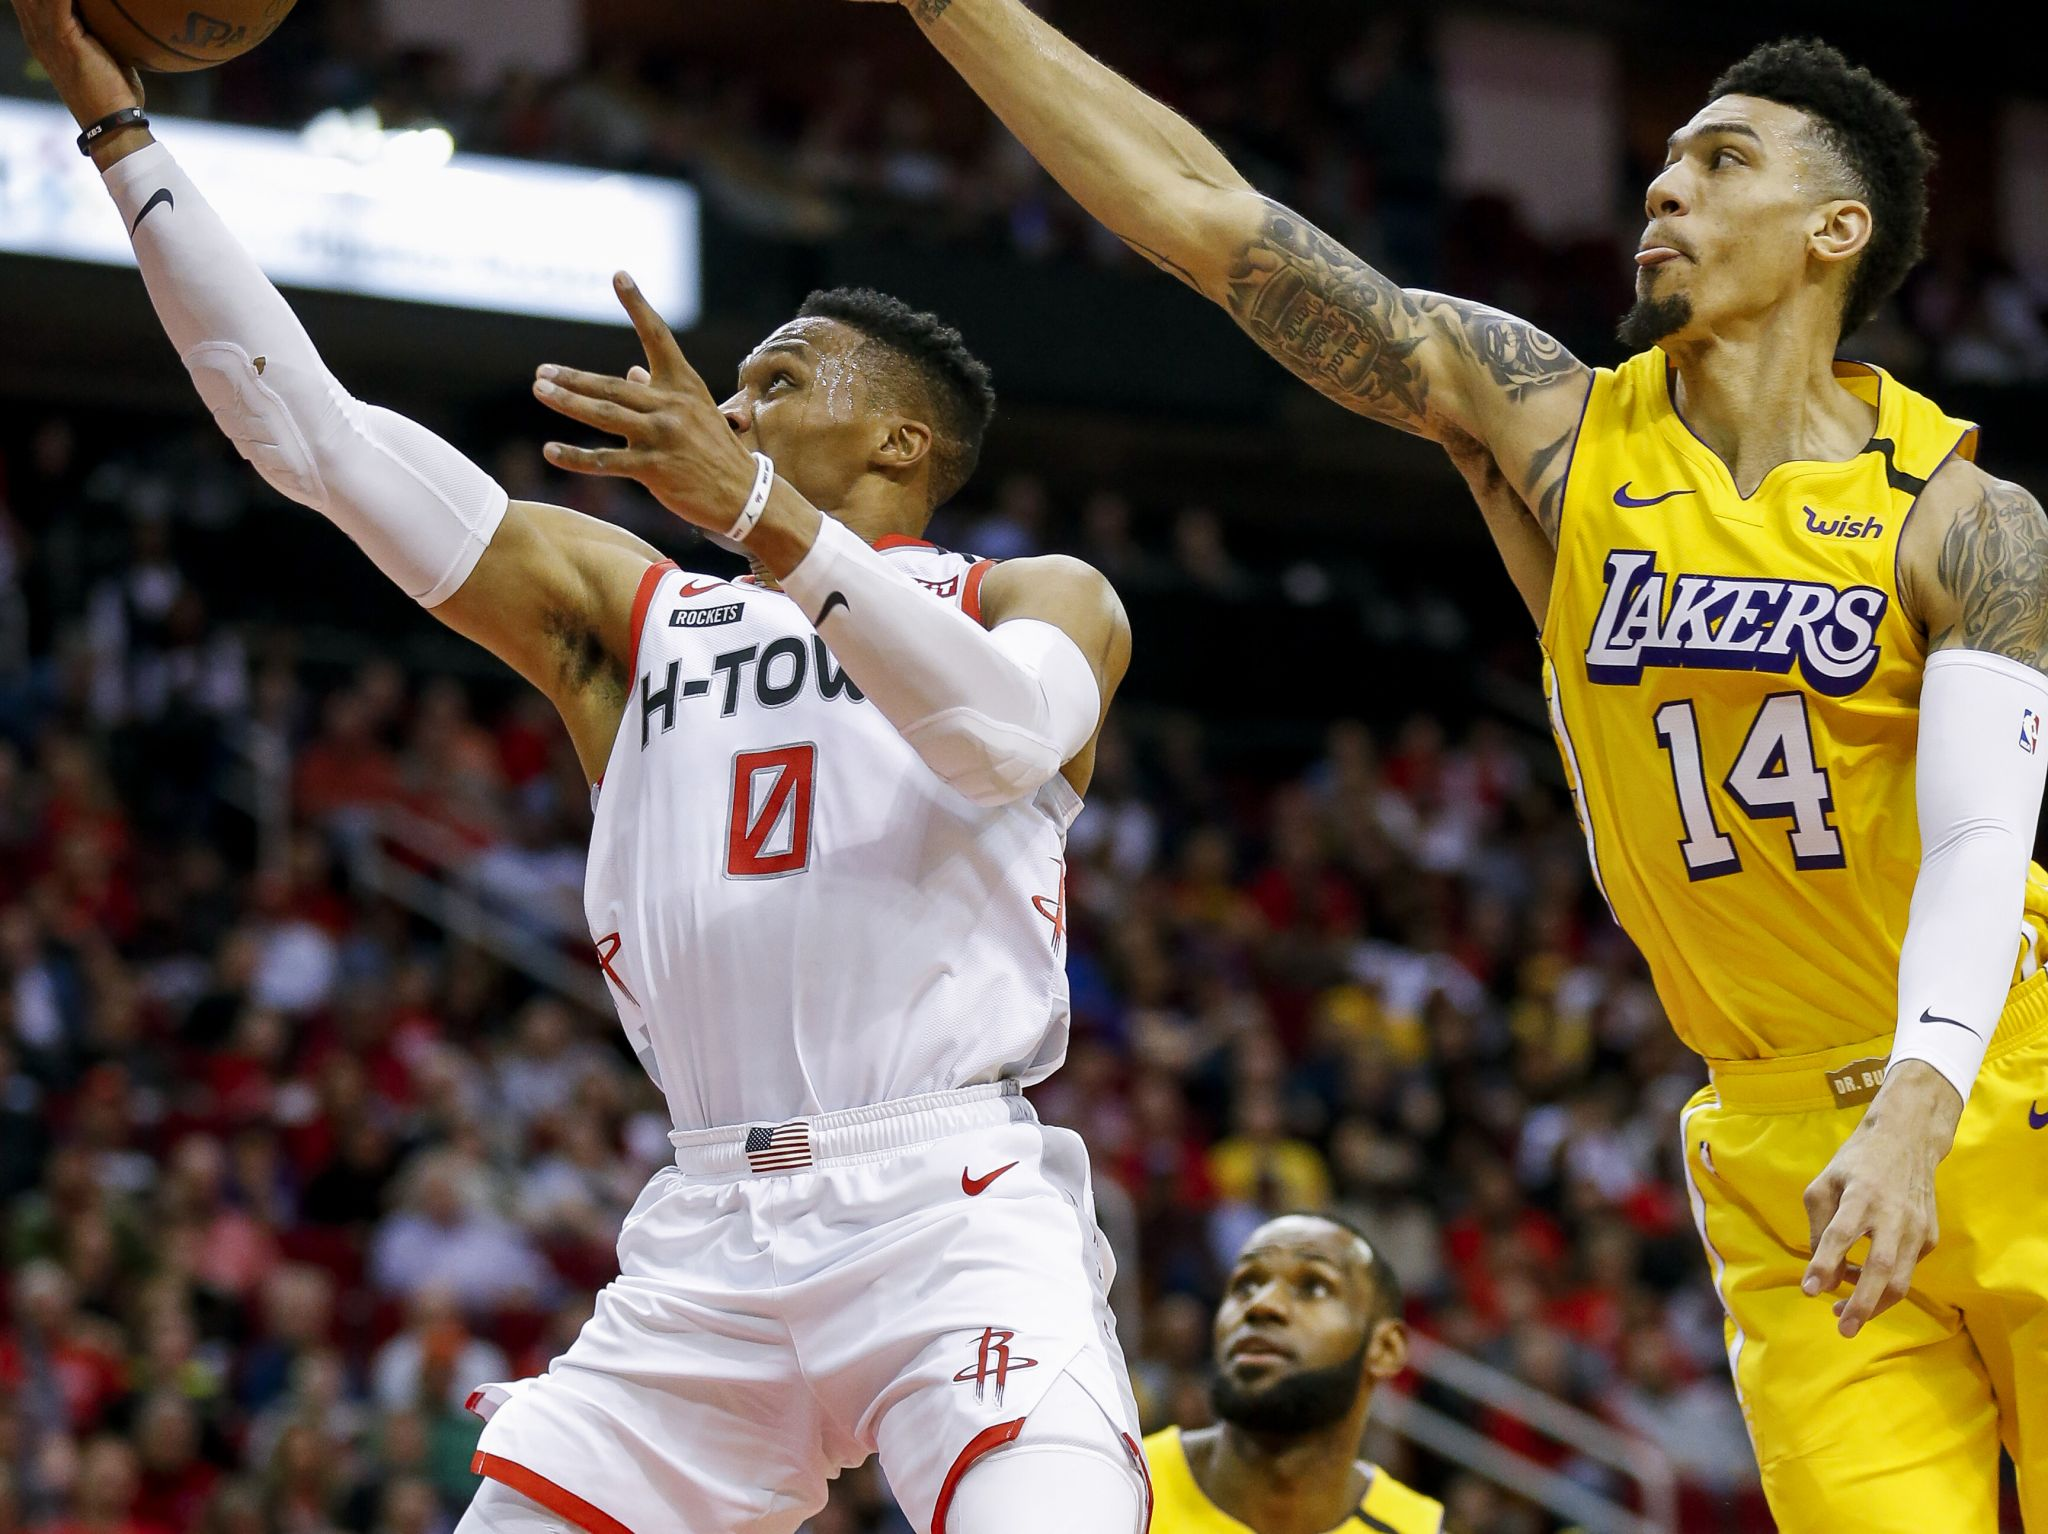 Rockets stumble in second half, fall to Lakers for third straight loss